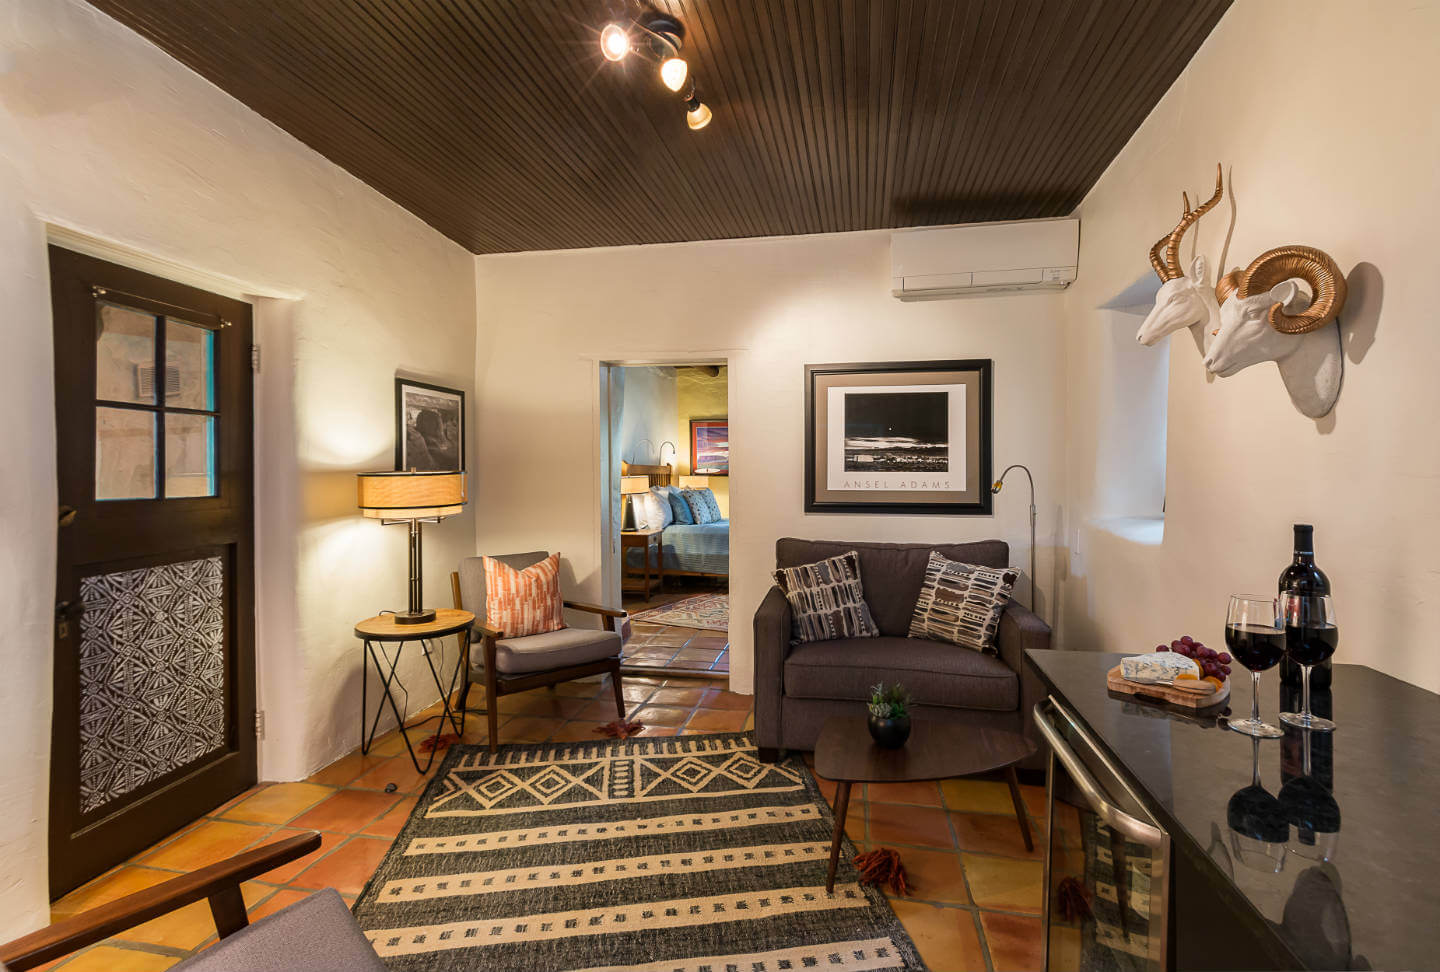 Places to Stay in Santa Fe - Ansel Adams Suite